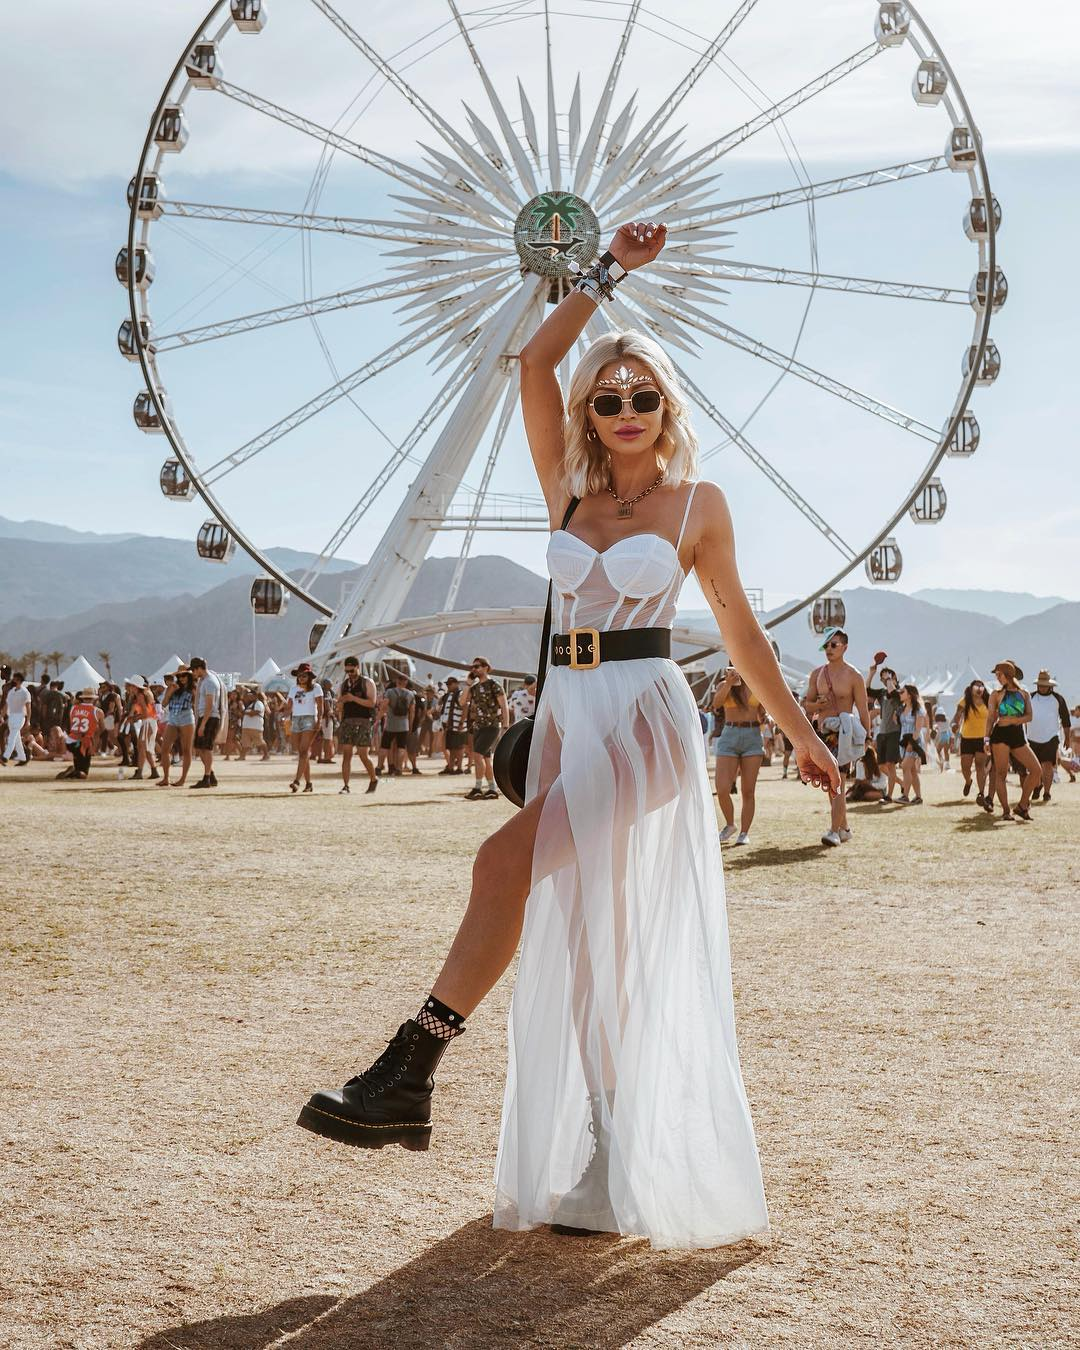 Festival outfits with white dresses